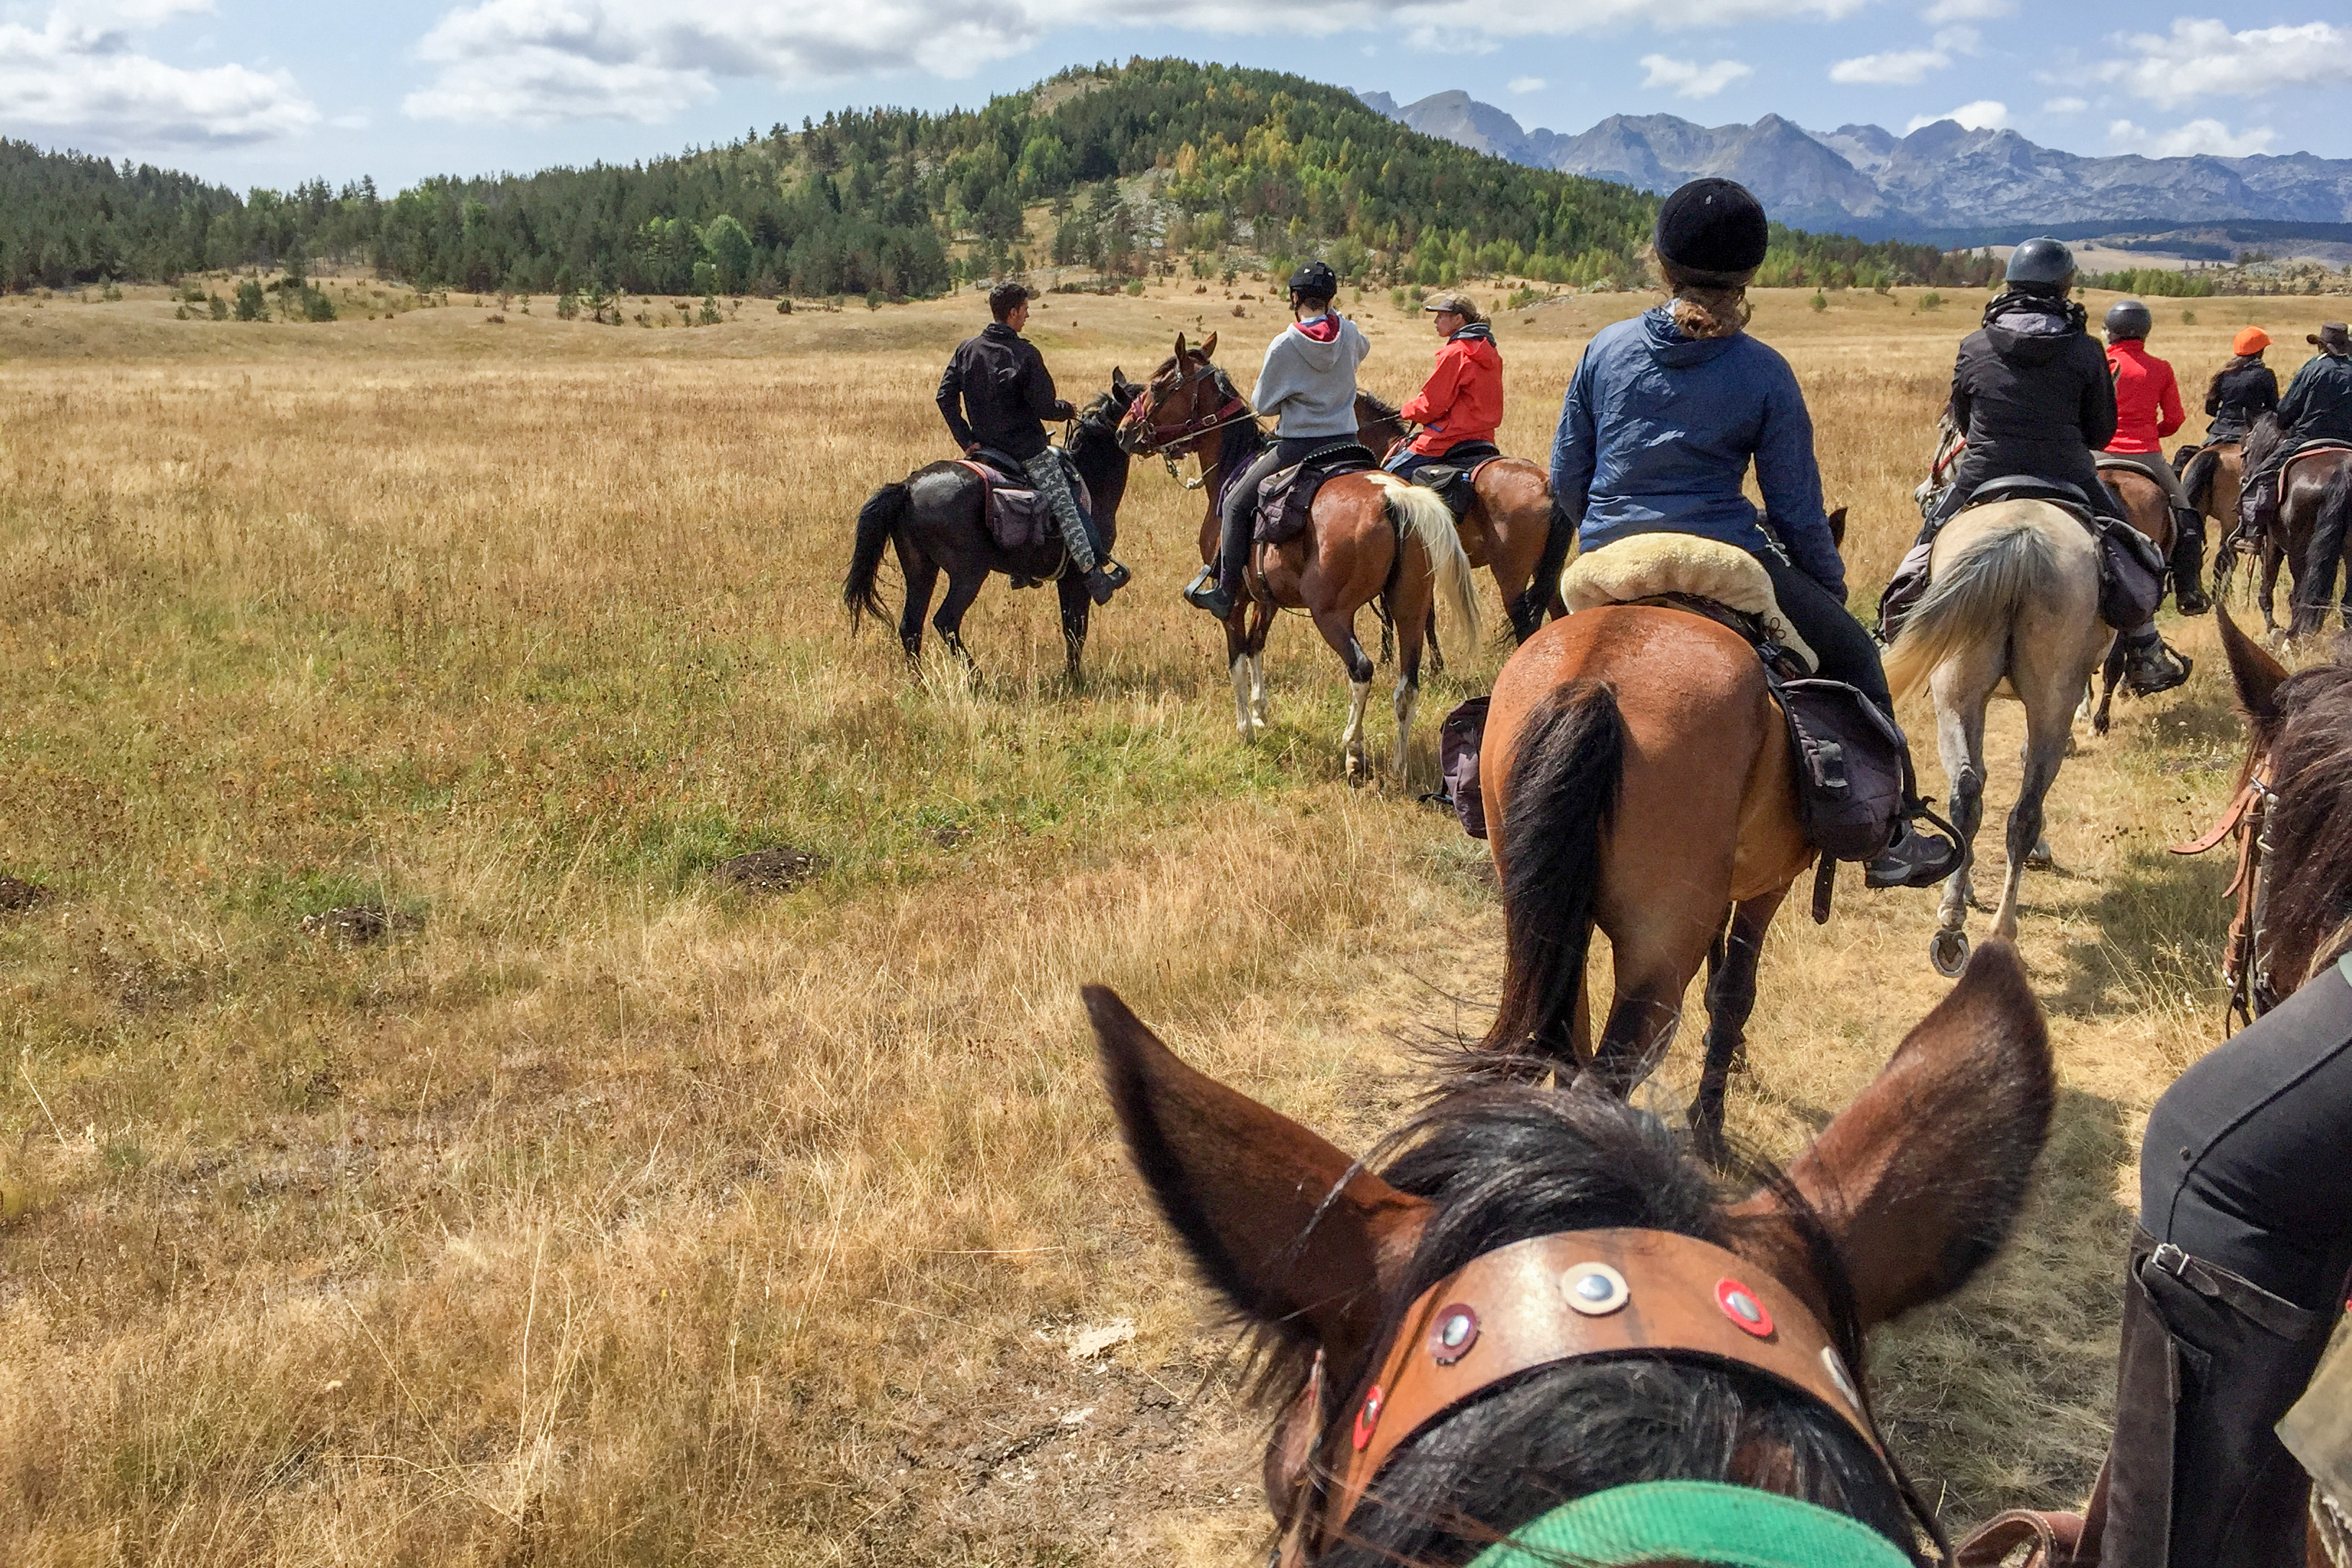 Your fellow riders can offer a host of horse riding tips